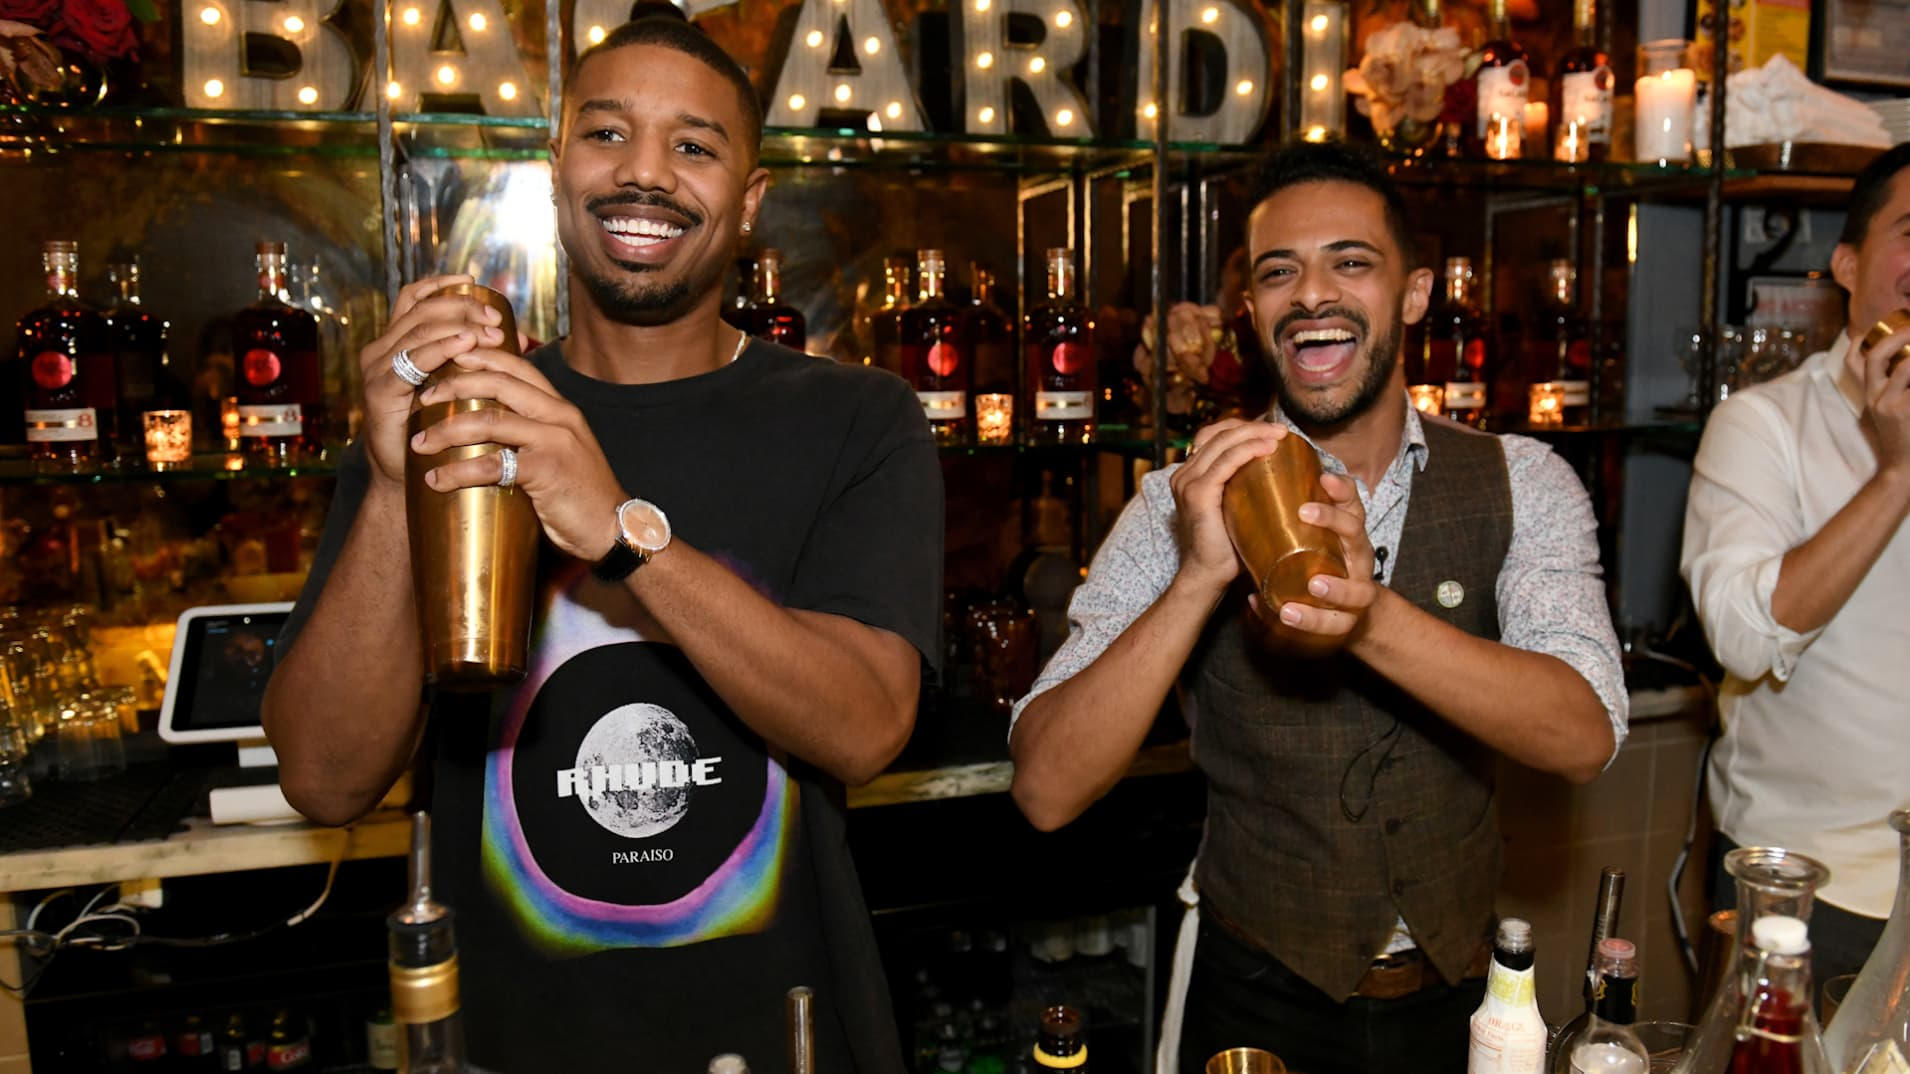 Here's why 'Black Panther' star Michael B. Jordan invests in rum